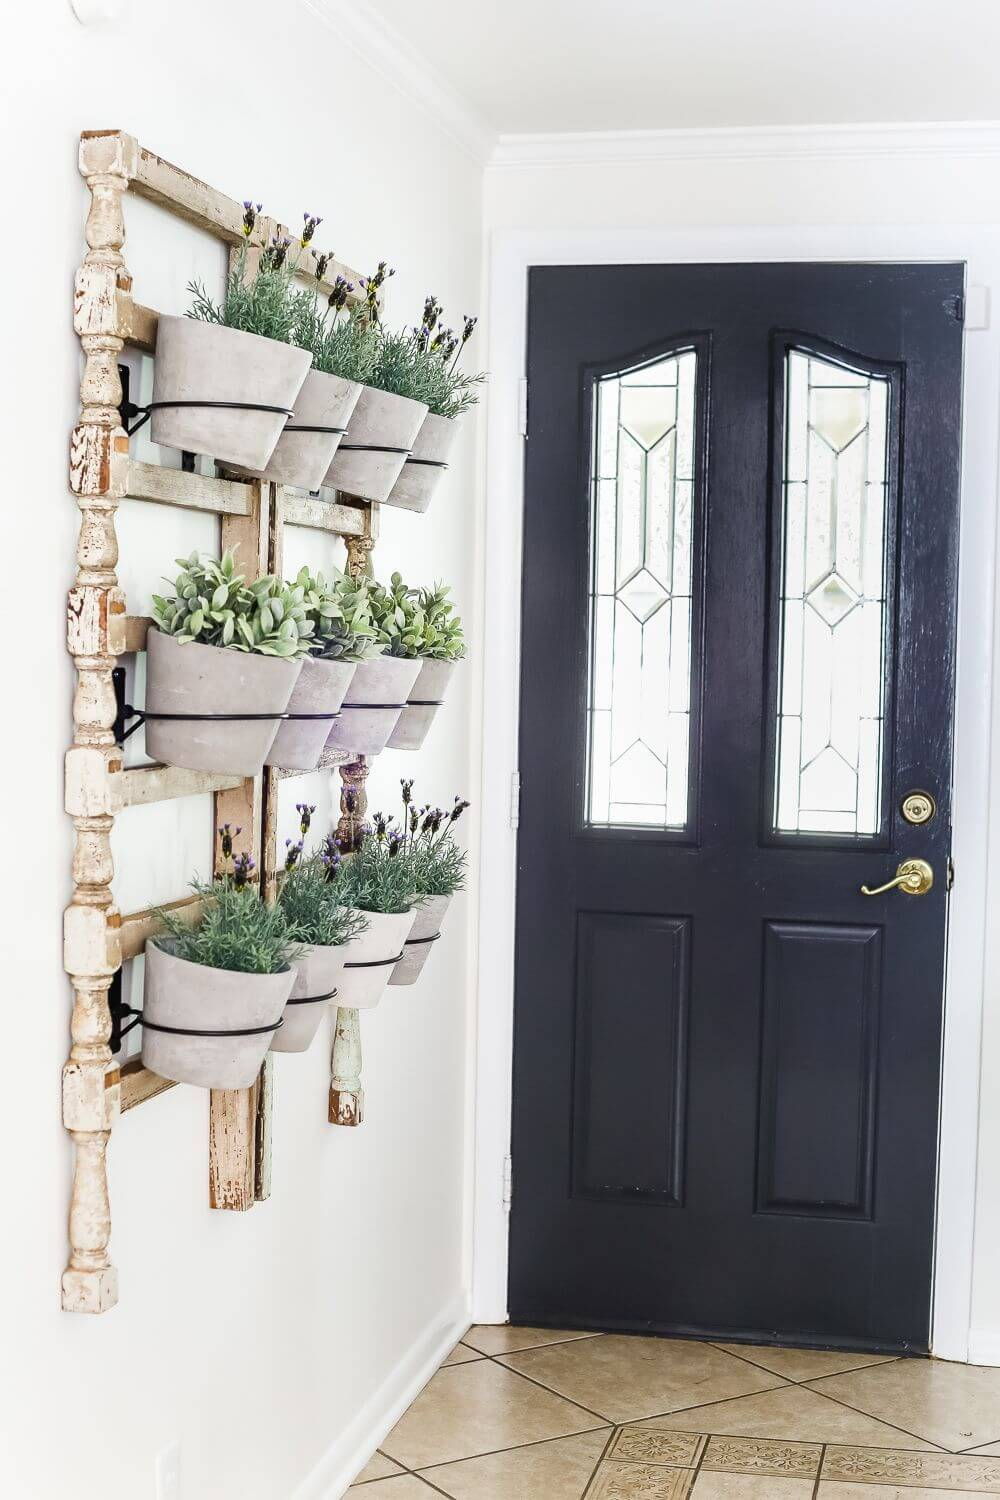 Turned Wood Racks with Plant Buckets